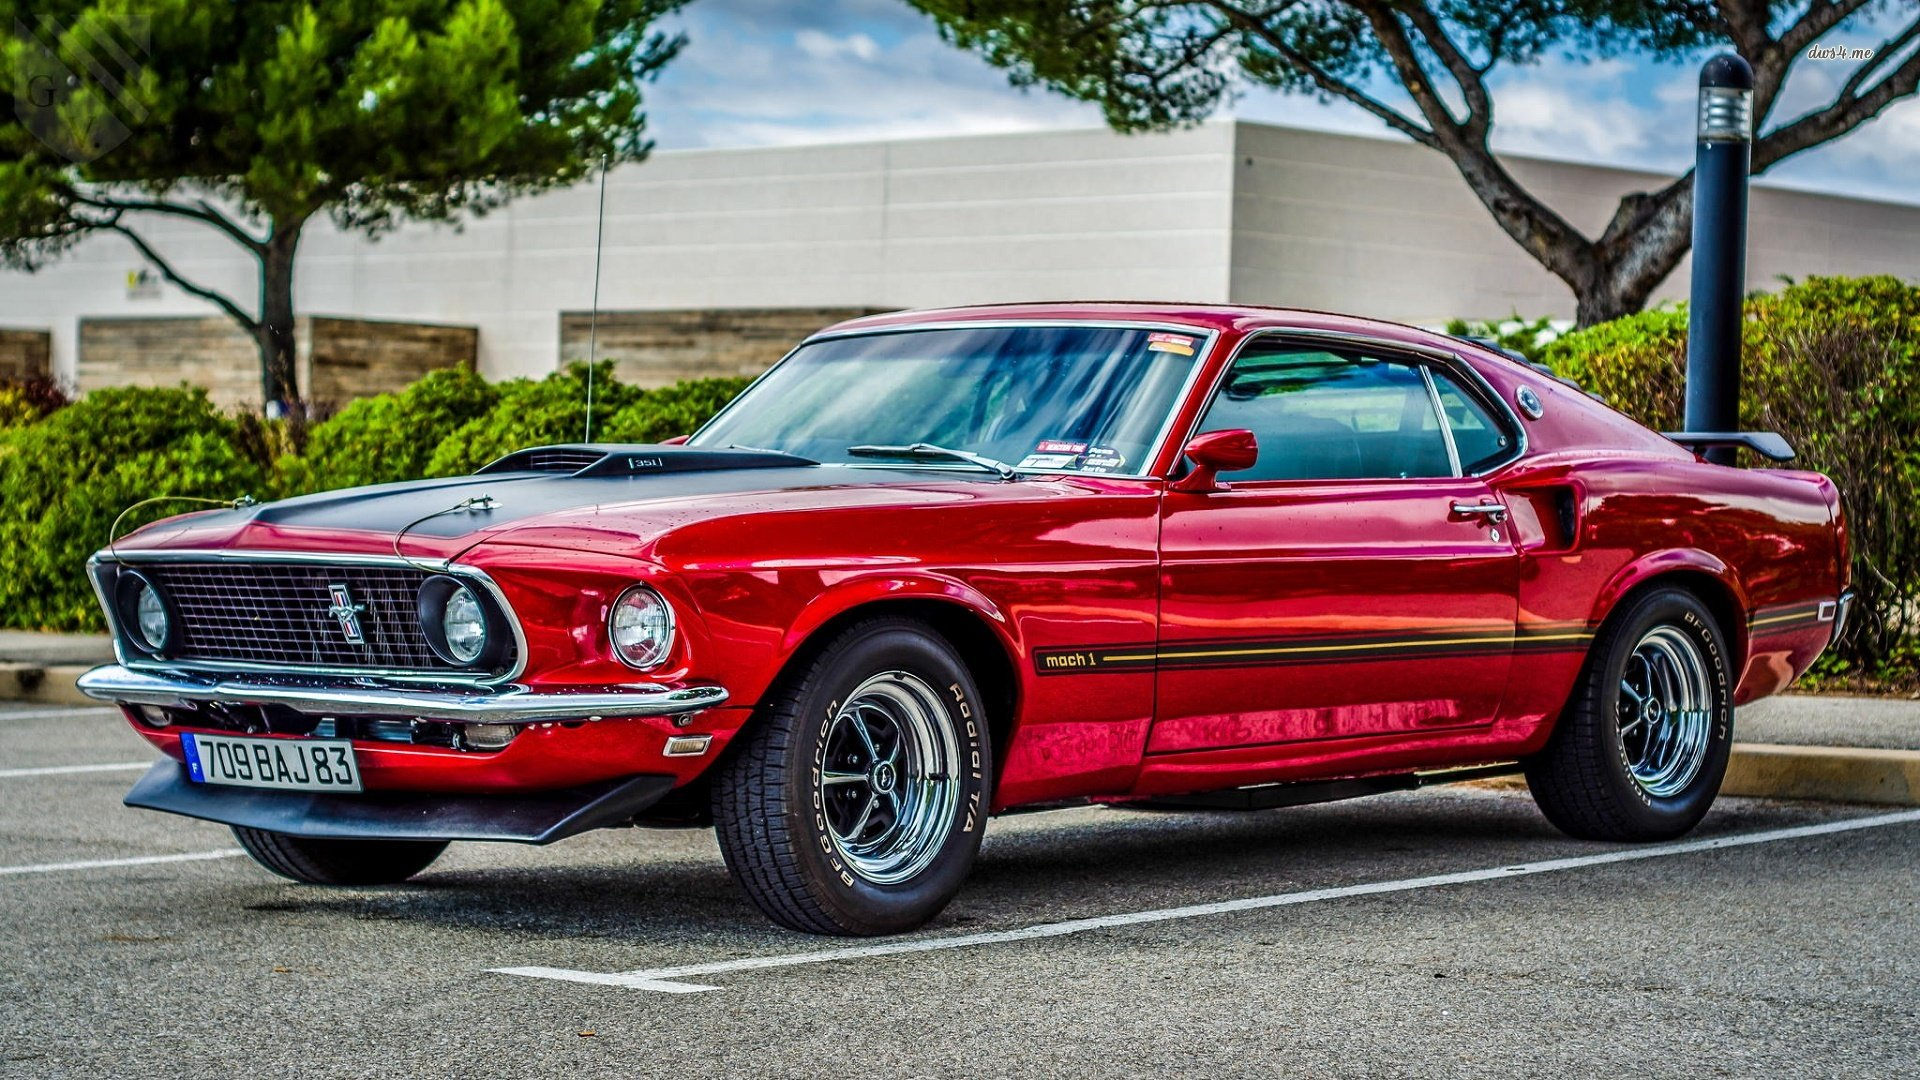 1969 Ford Mustang Mach 1 Hd Wallpaper Background Image 1920x1080